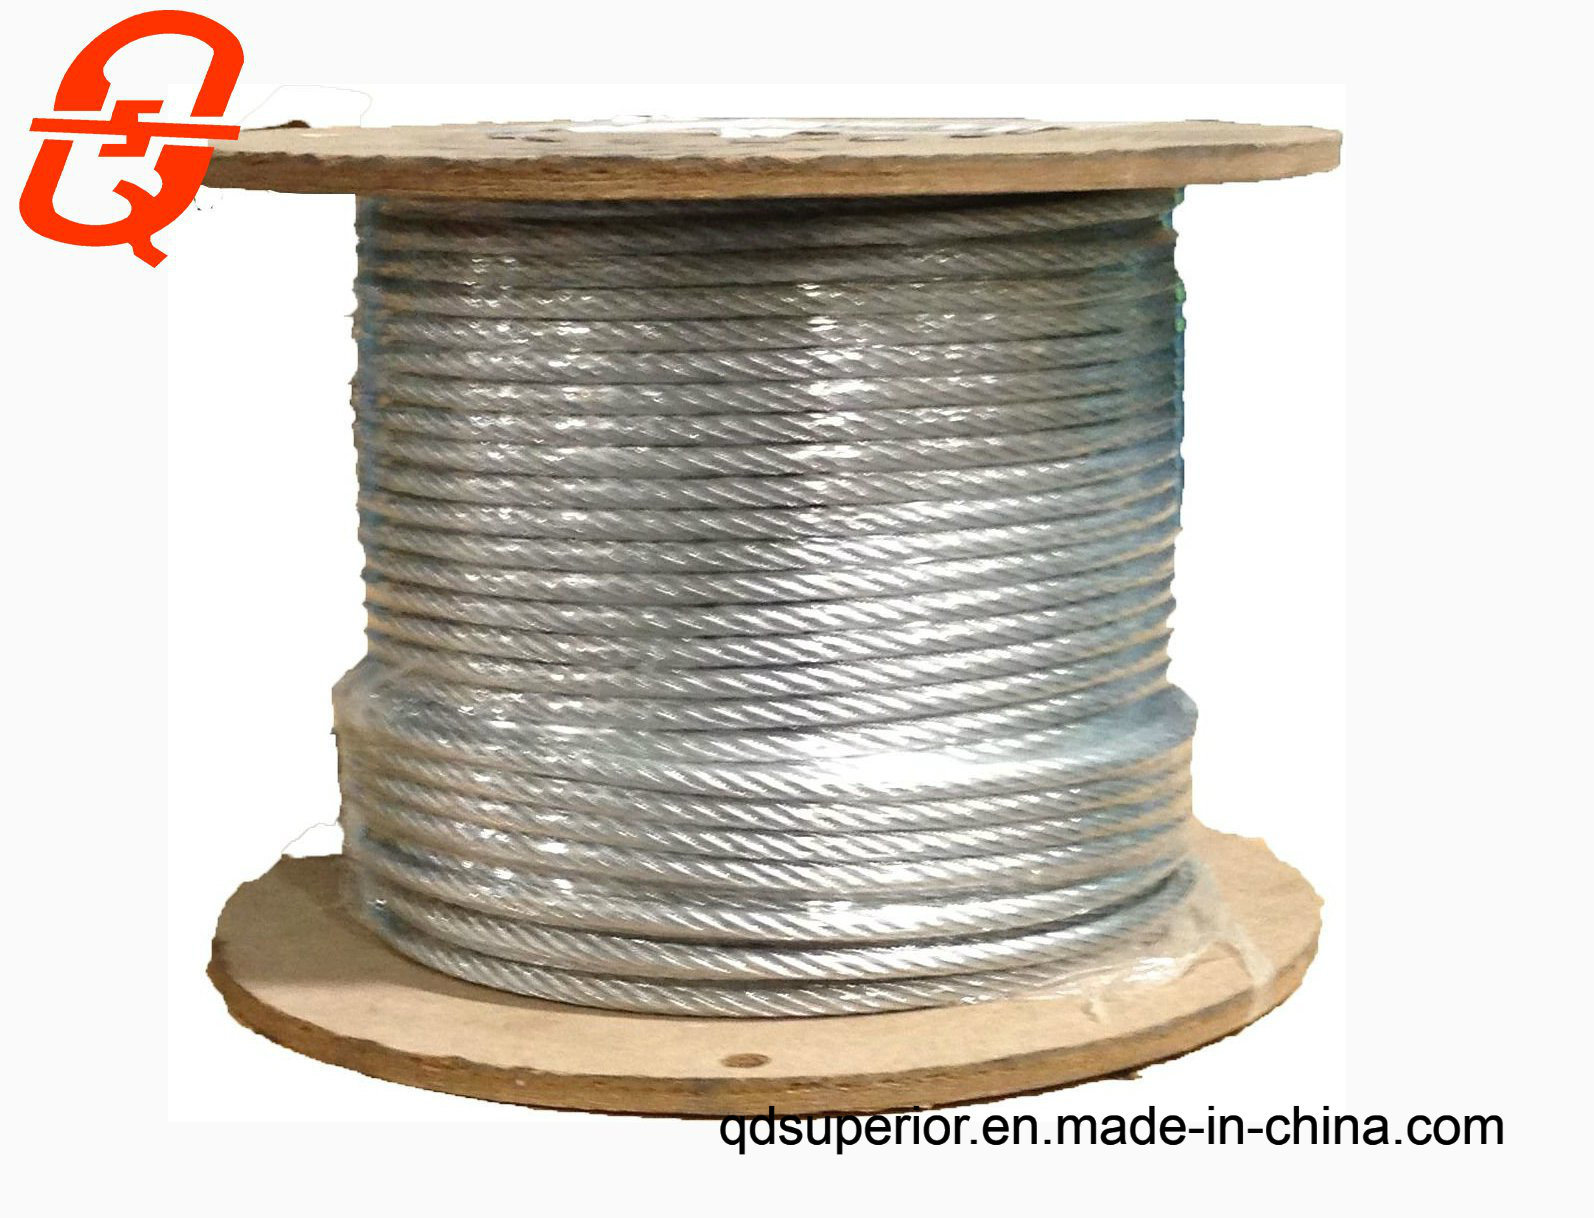 China Stainless Steel Wire Rope Raw Material AISI304 and AIS316 ...